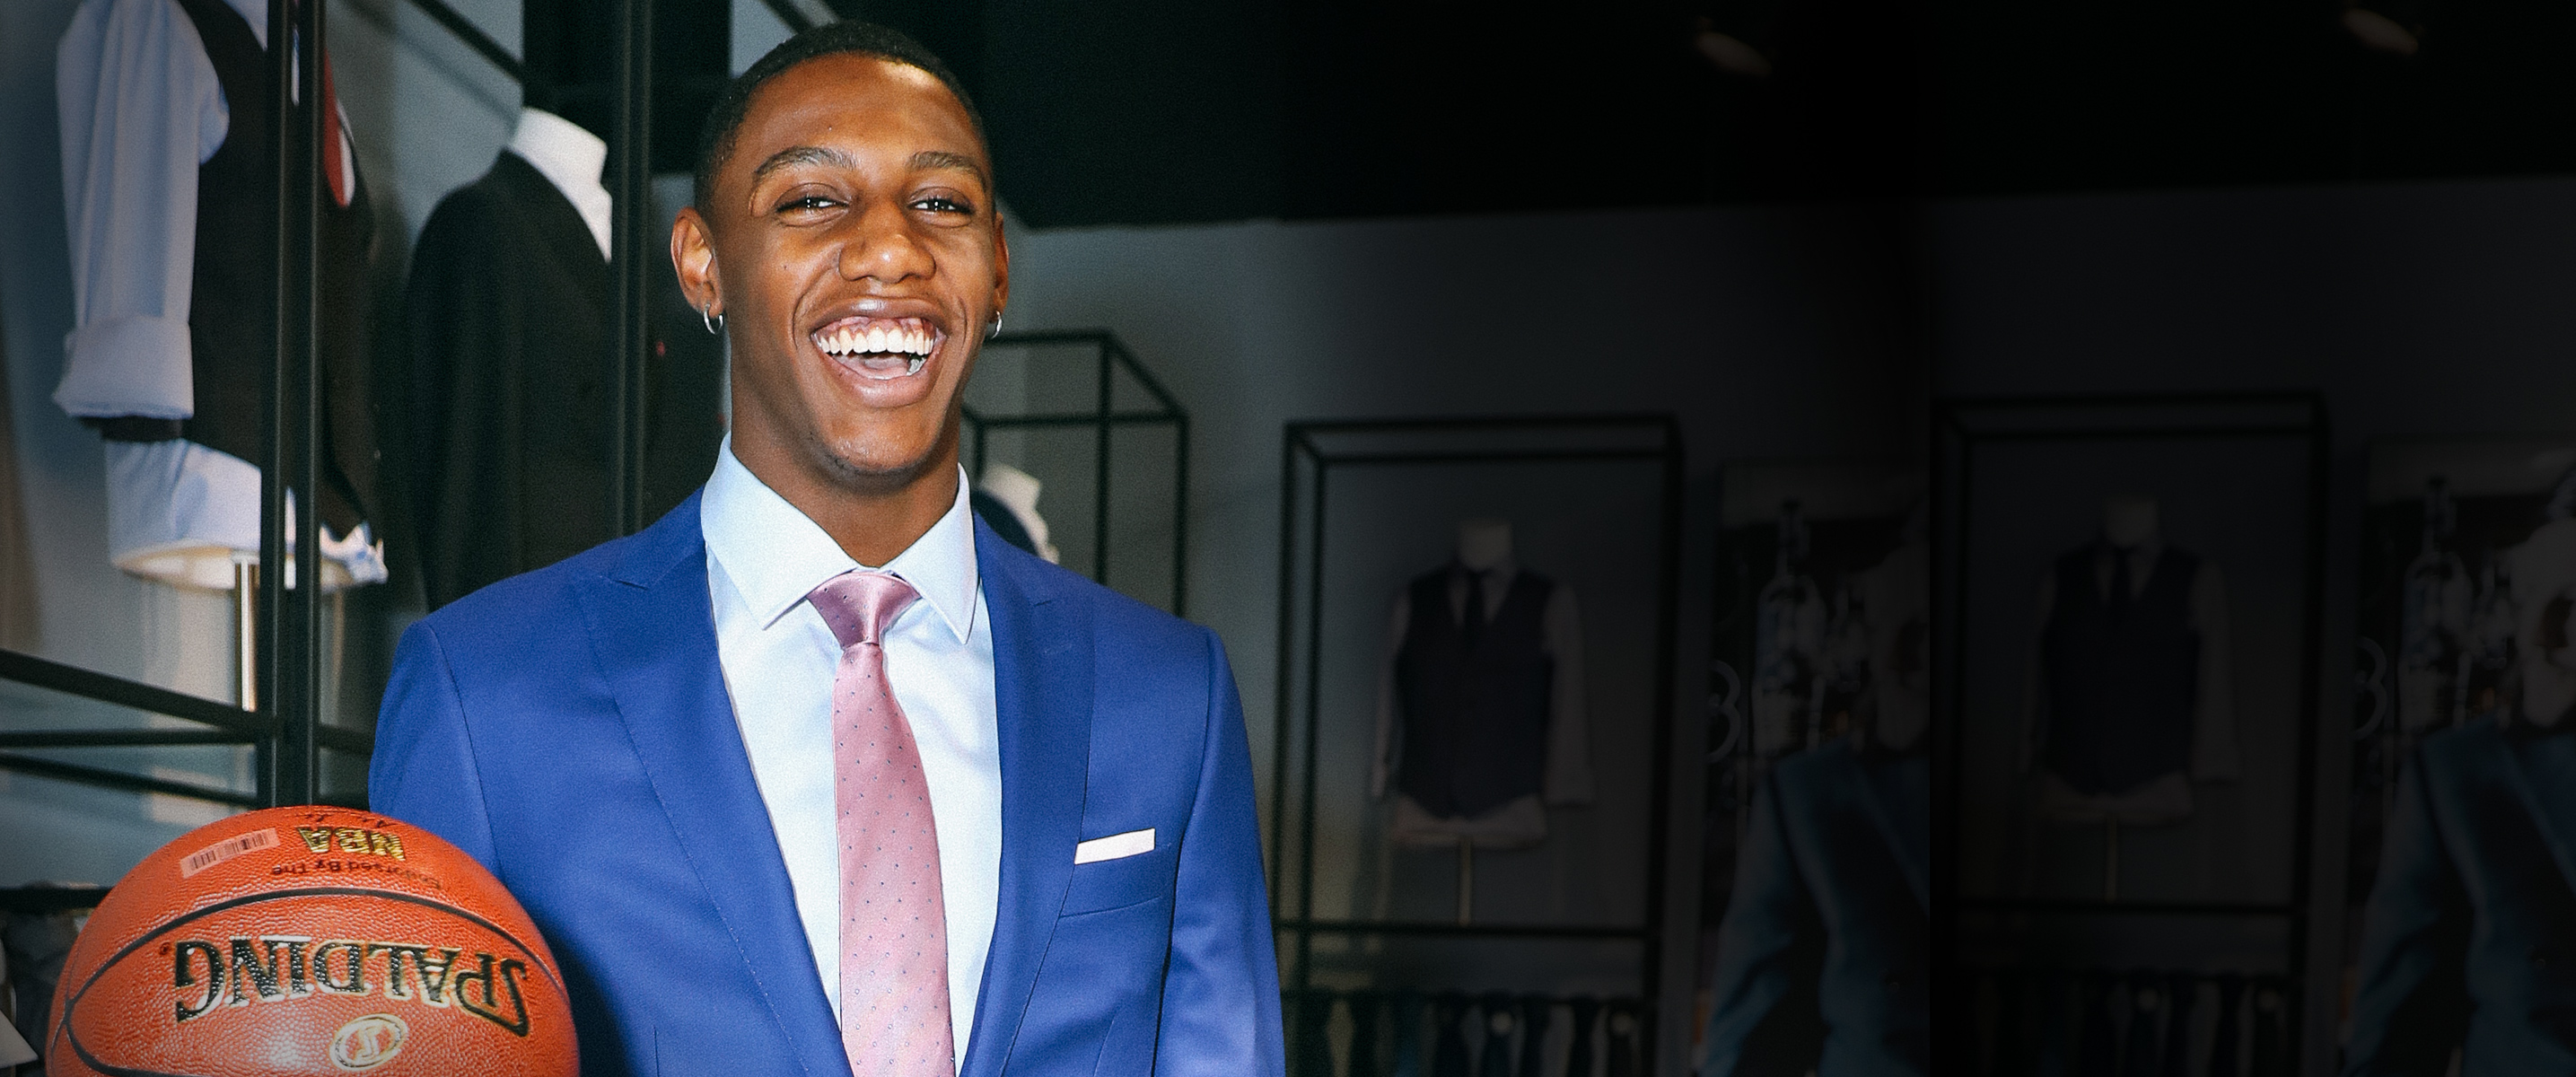 RJ Barrett is new Indochino Signature Athlete.